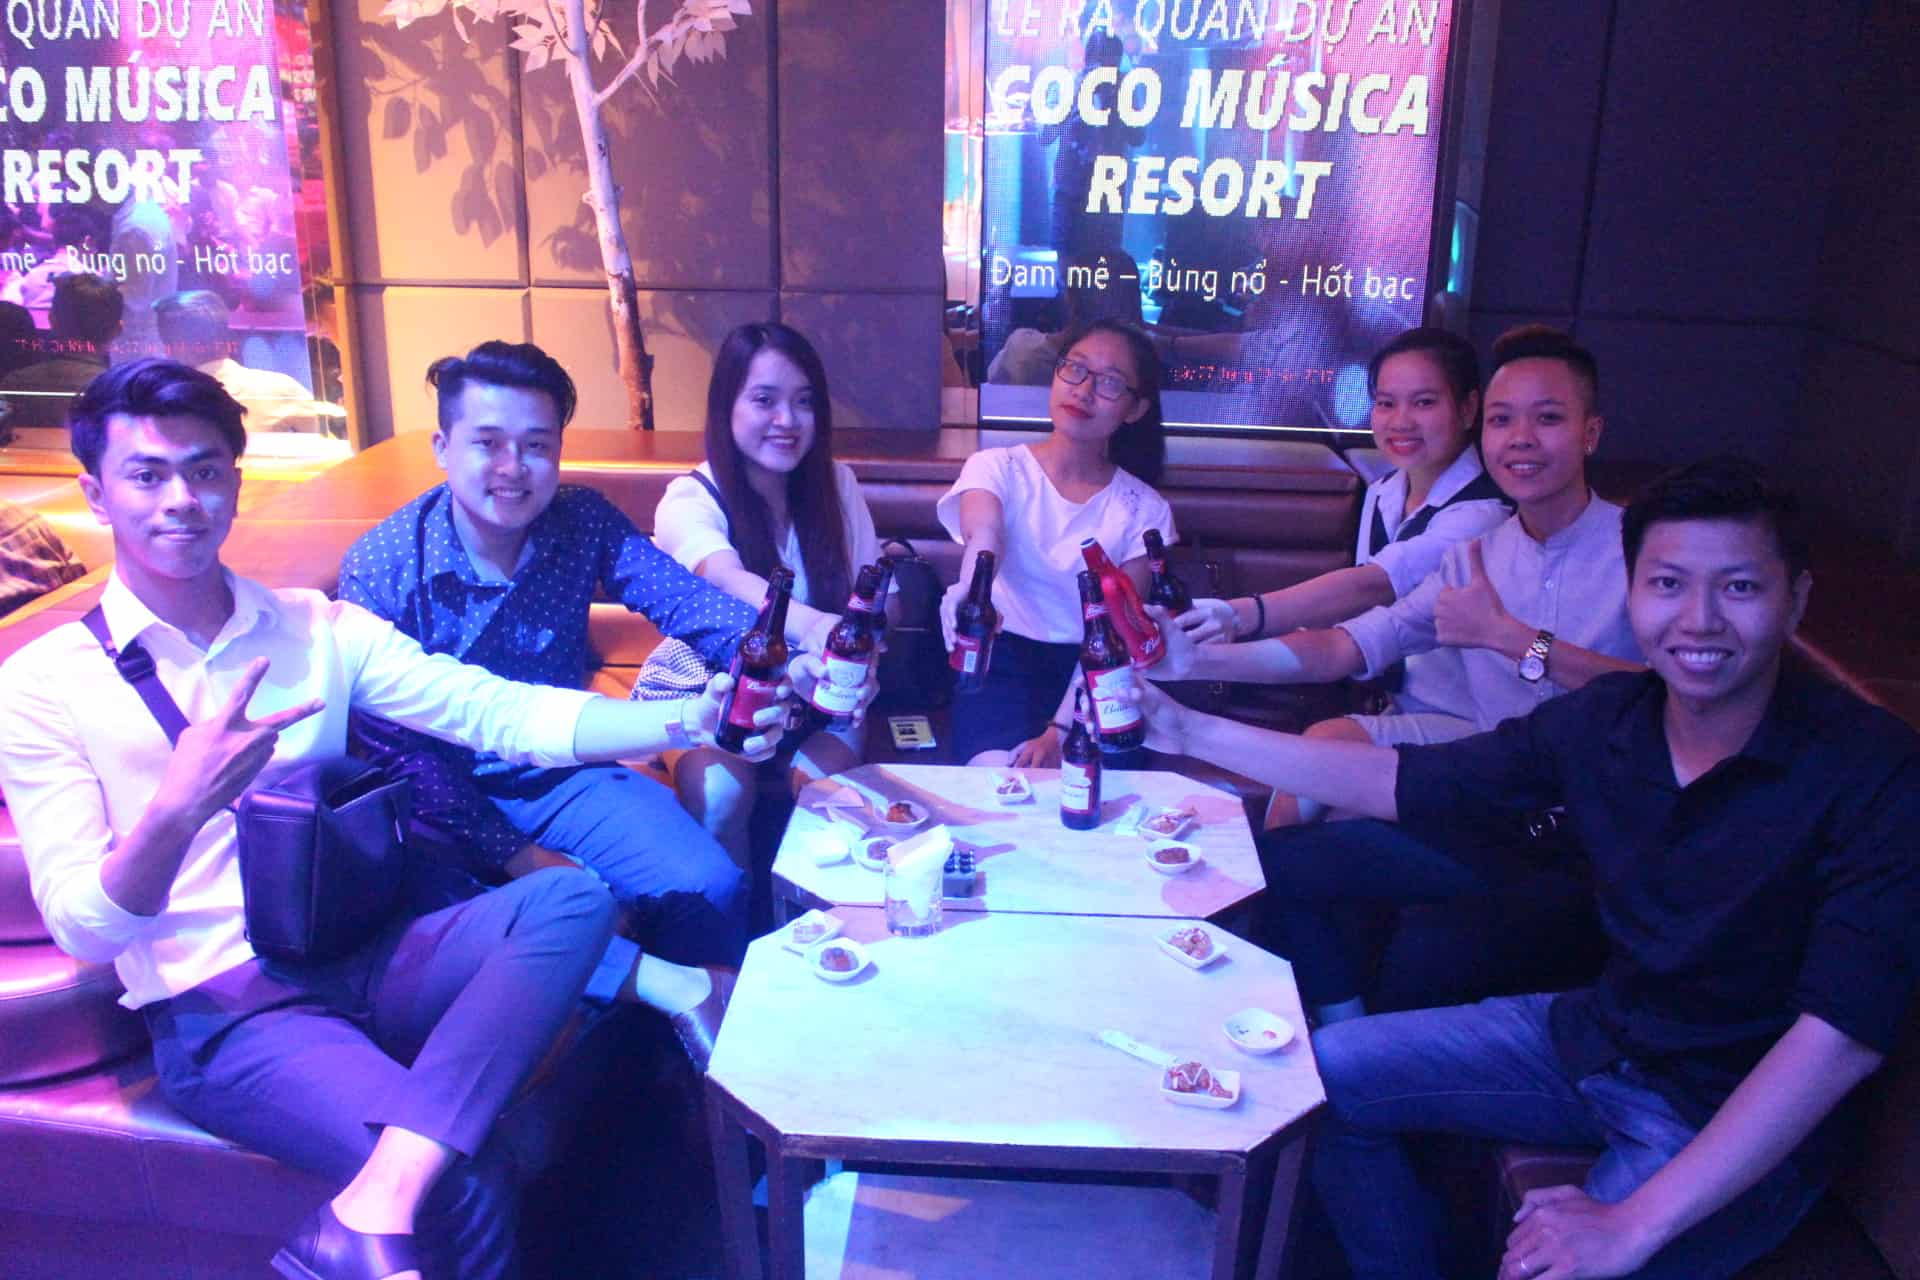 smartrealtors and partners tham gia le ra mat du an coco musica resort quay that sung – bung suc ban – don tet ung dung 9